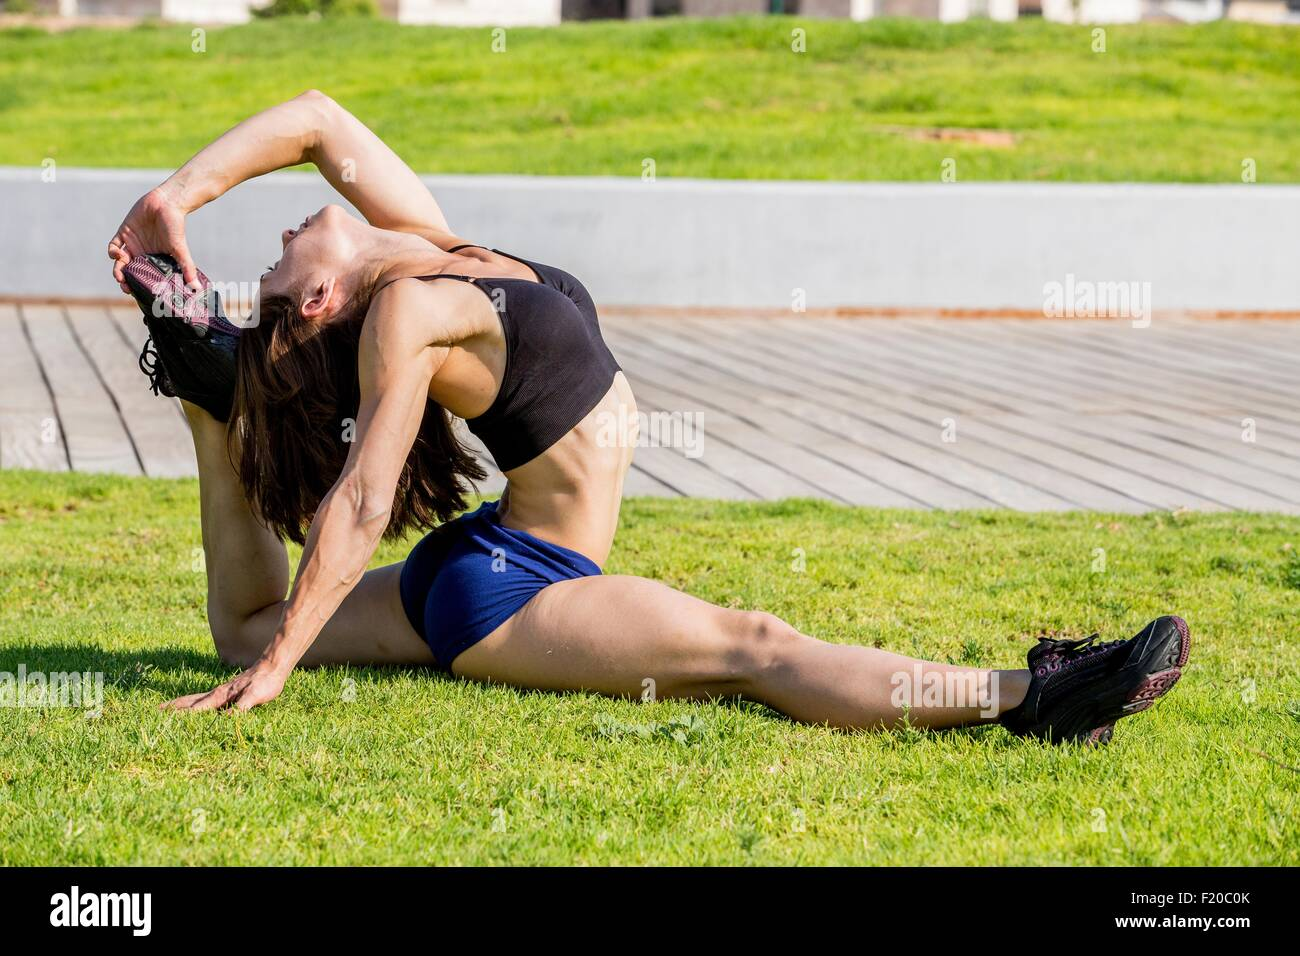 Young woman doing stretches in park Photo Stock